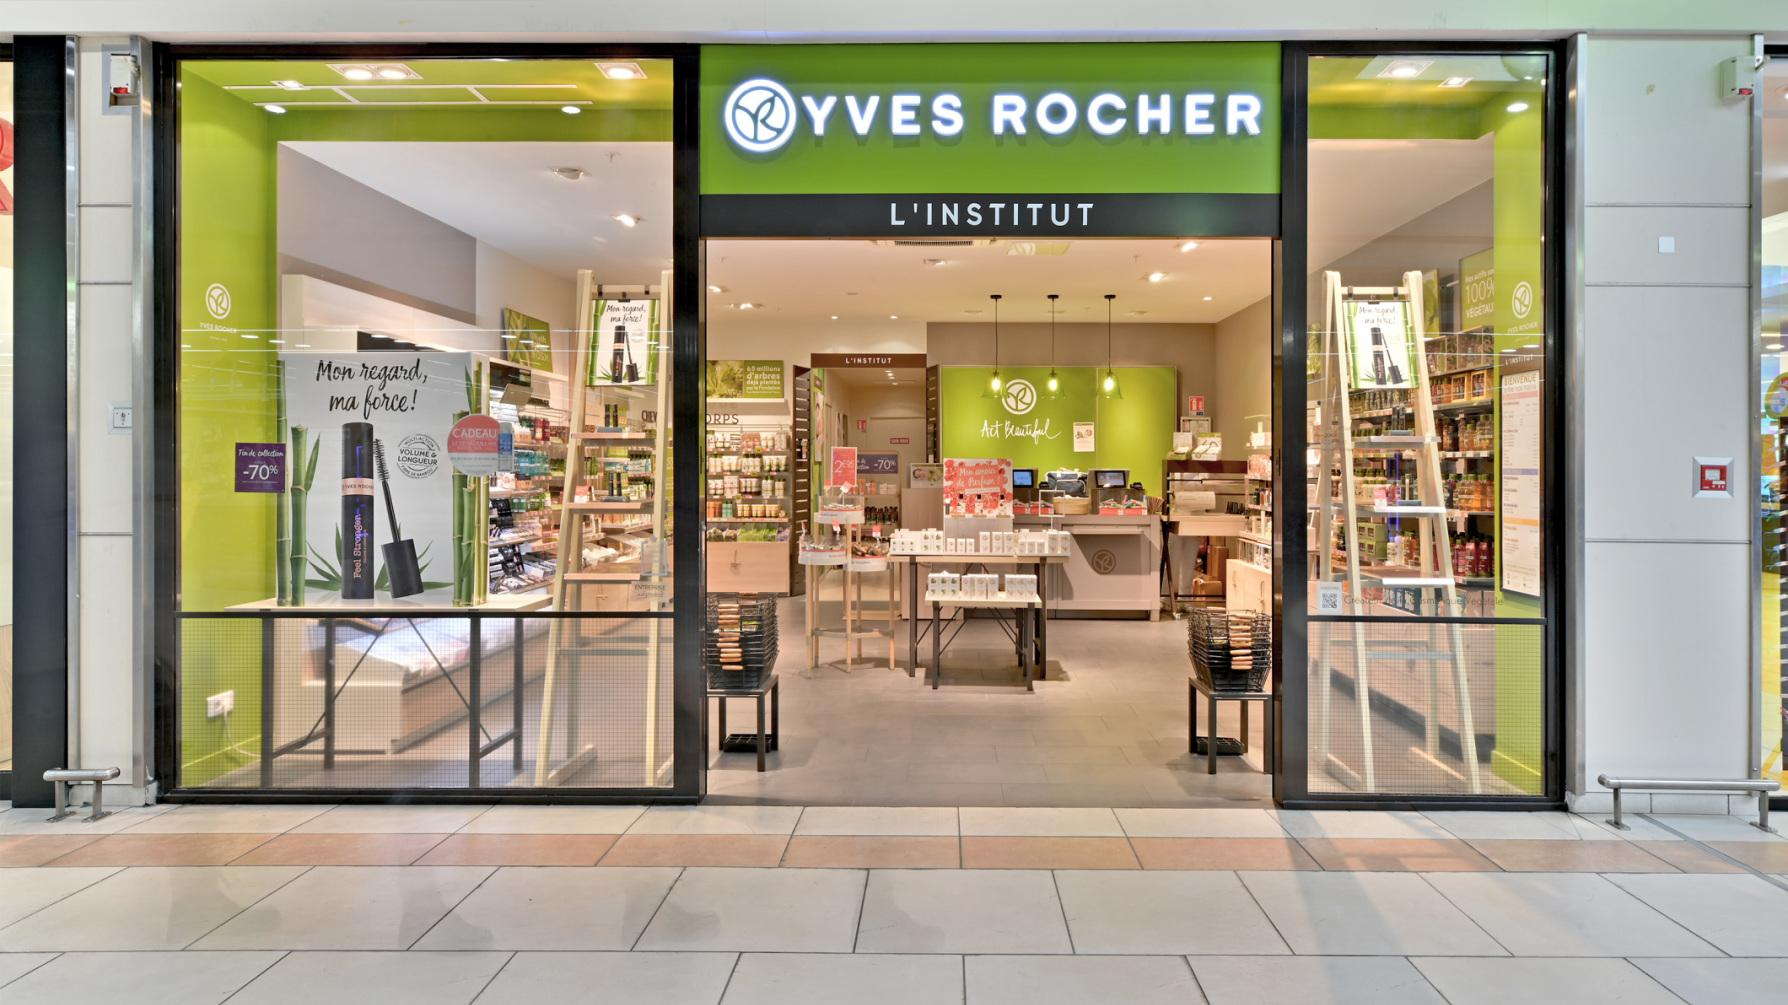 Yves Rocher Les Angles